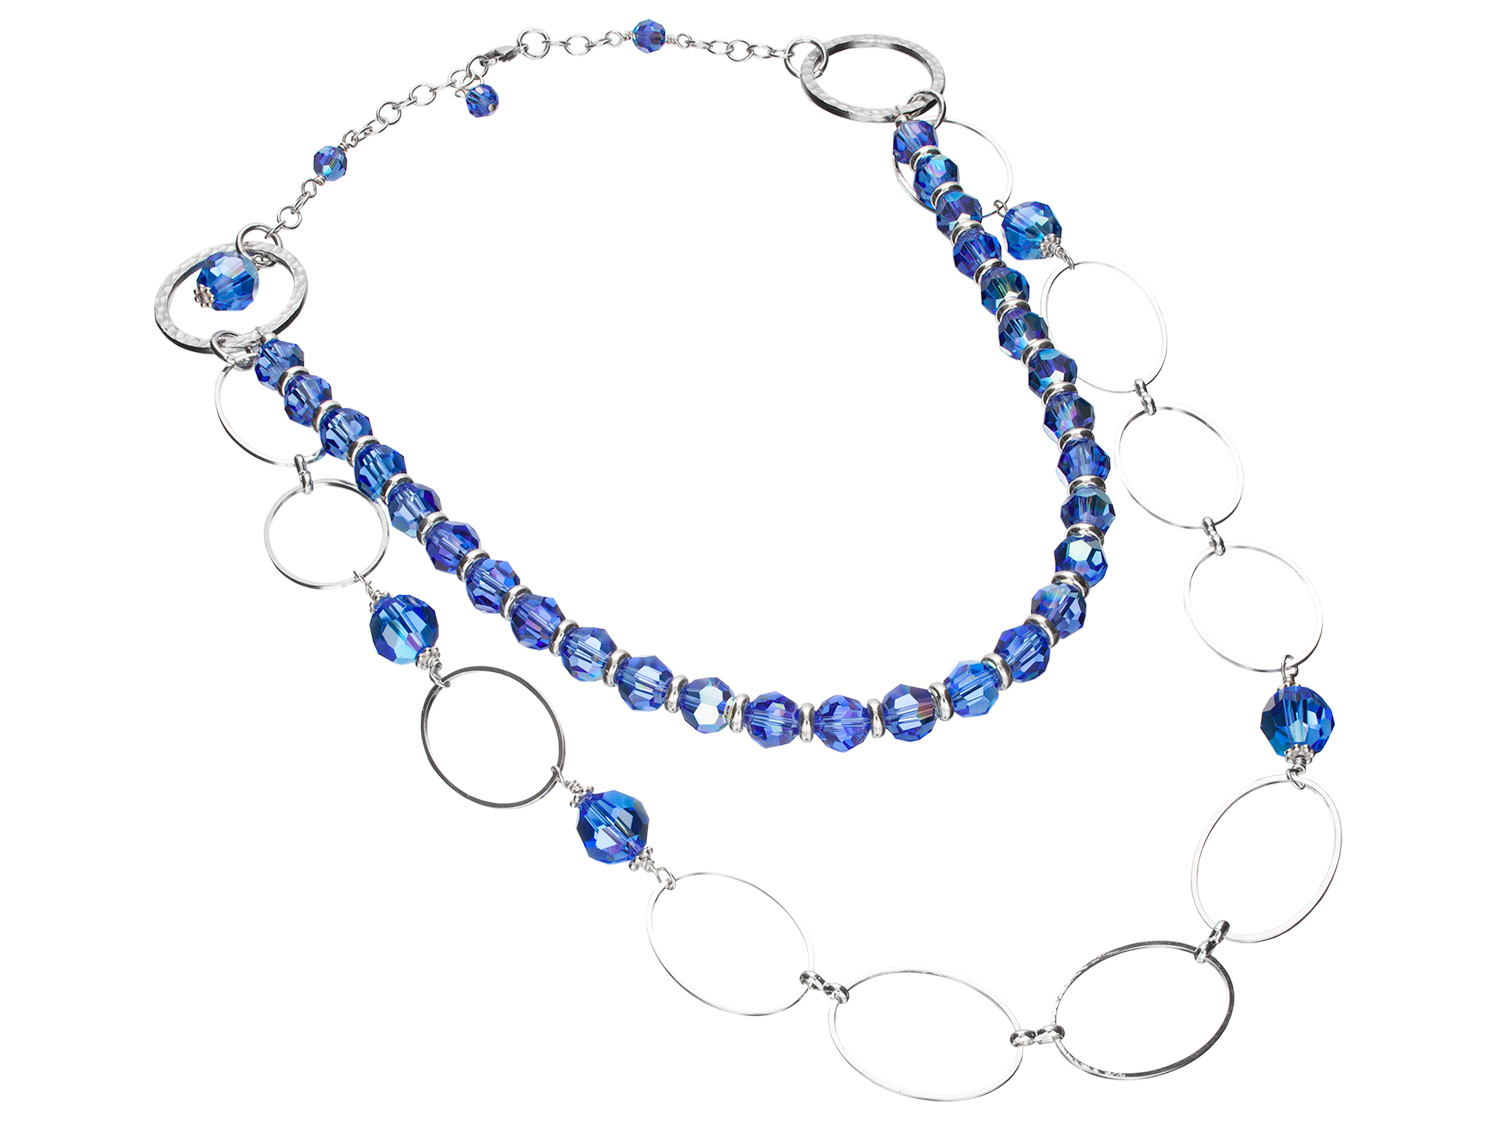 Sapphire Serenity Necklace